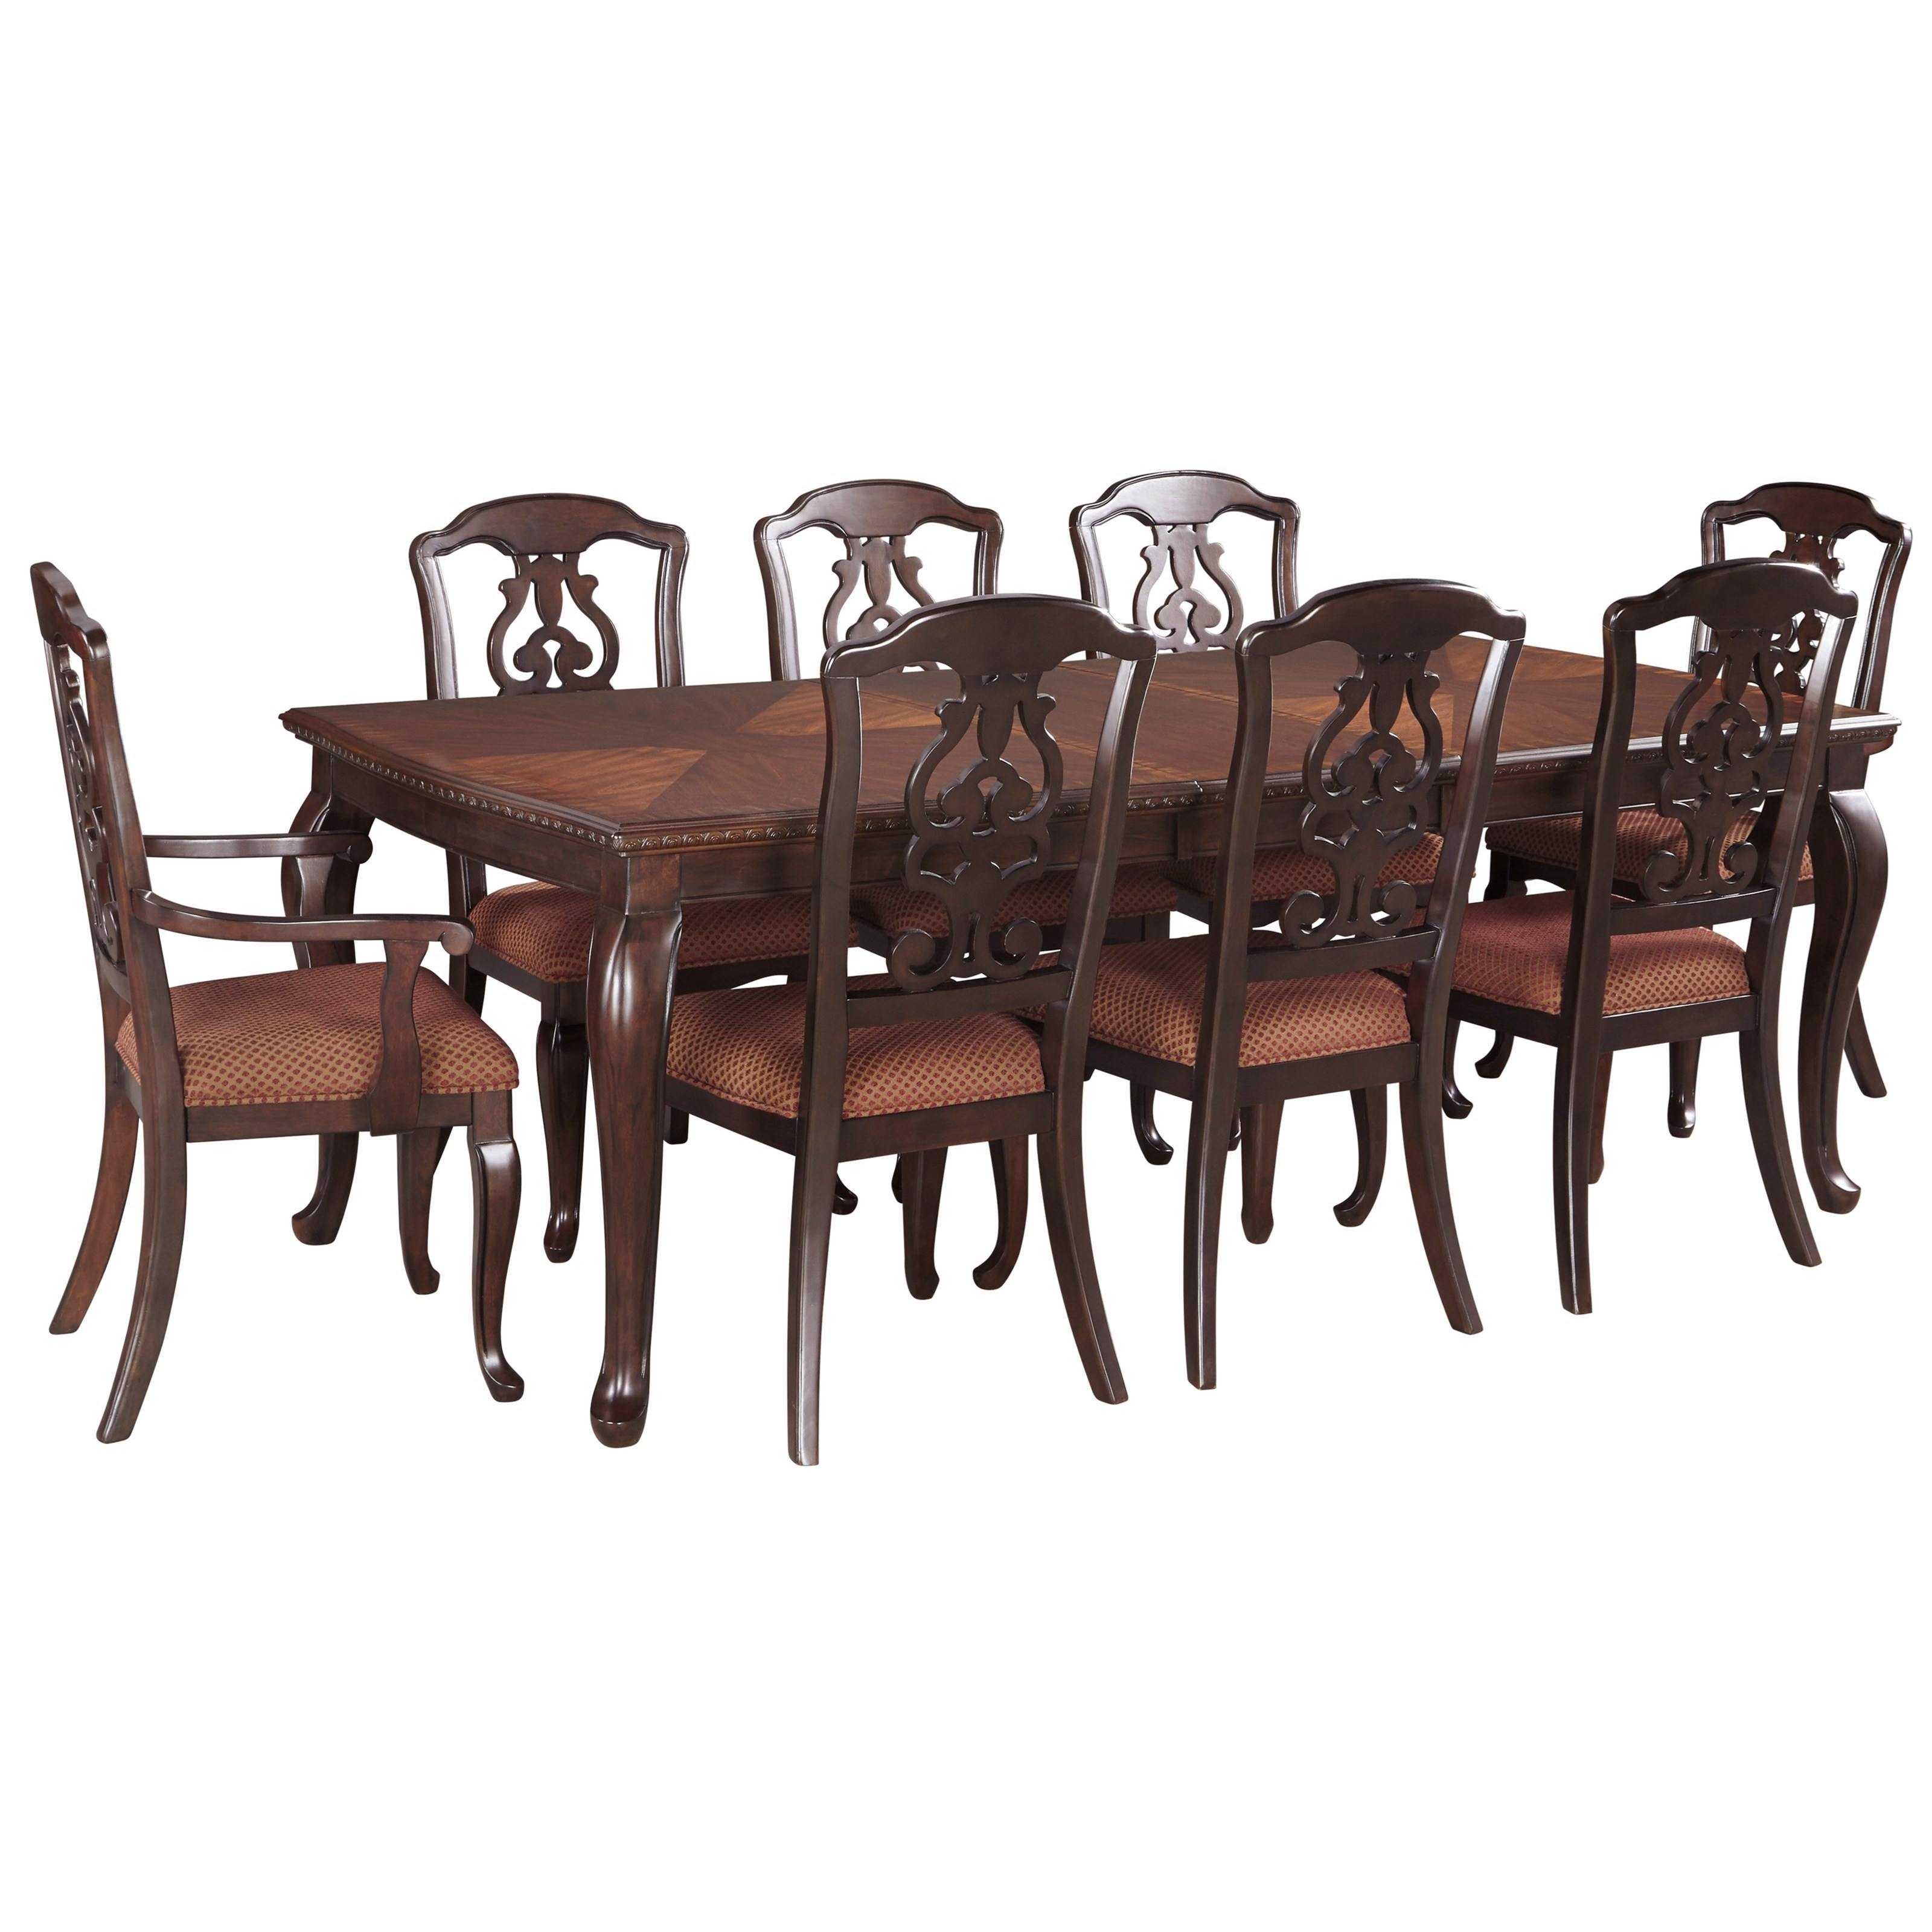 Signature design by ashley gladdenville traditional 9 for 6 x dining room chairs